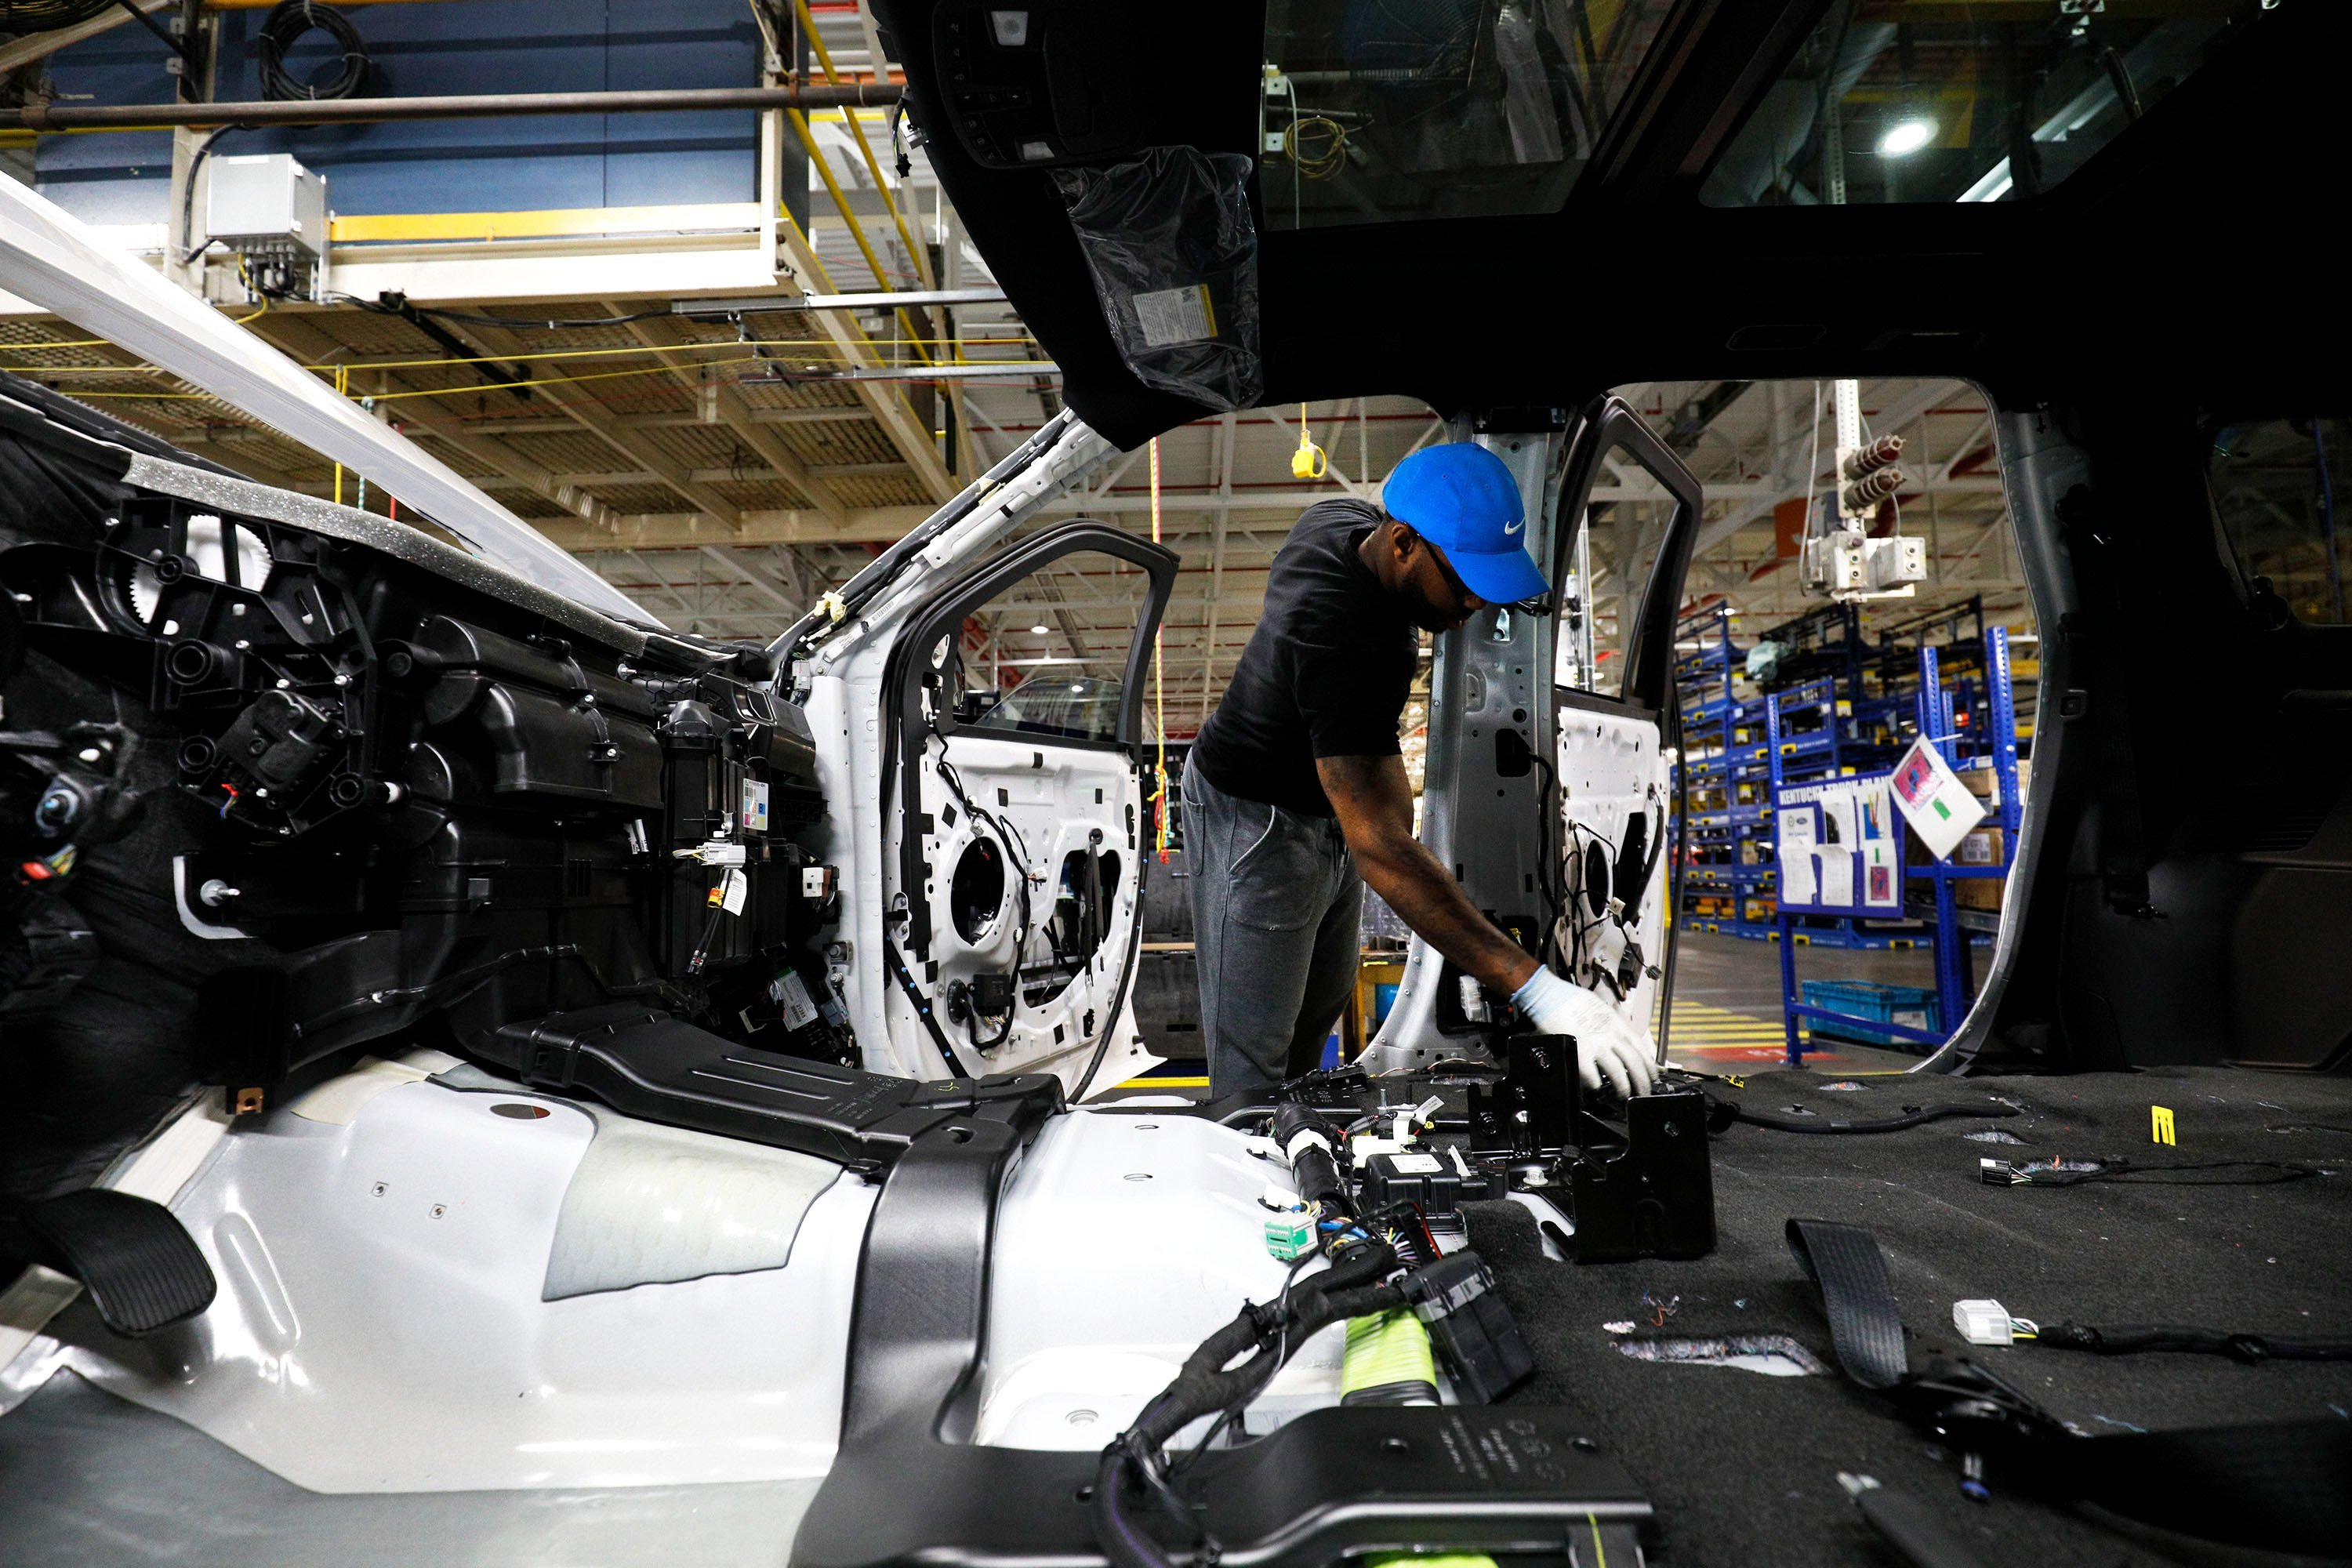 Ford workers appear set to approve labor deal